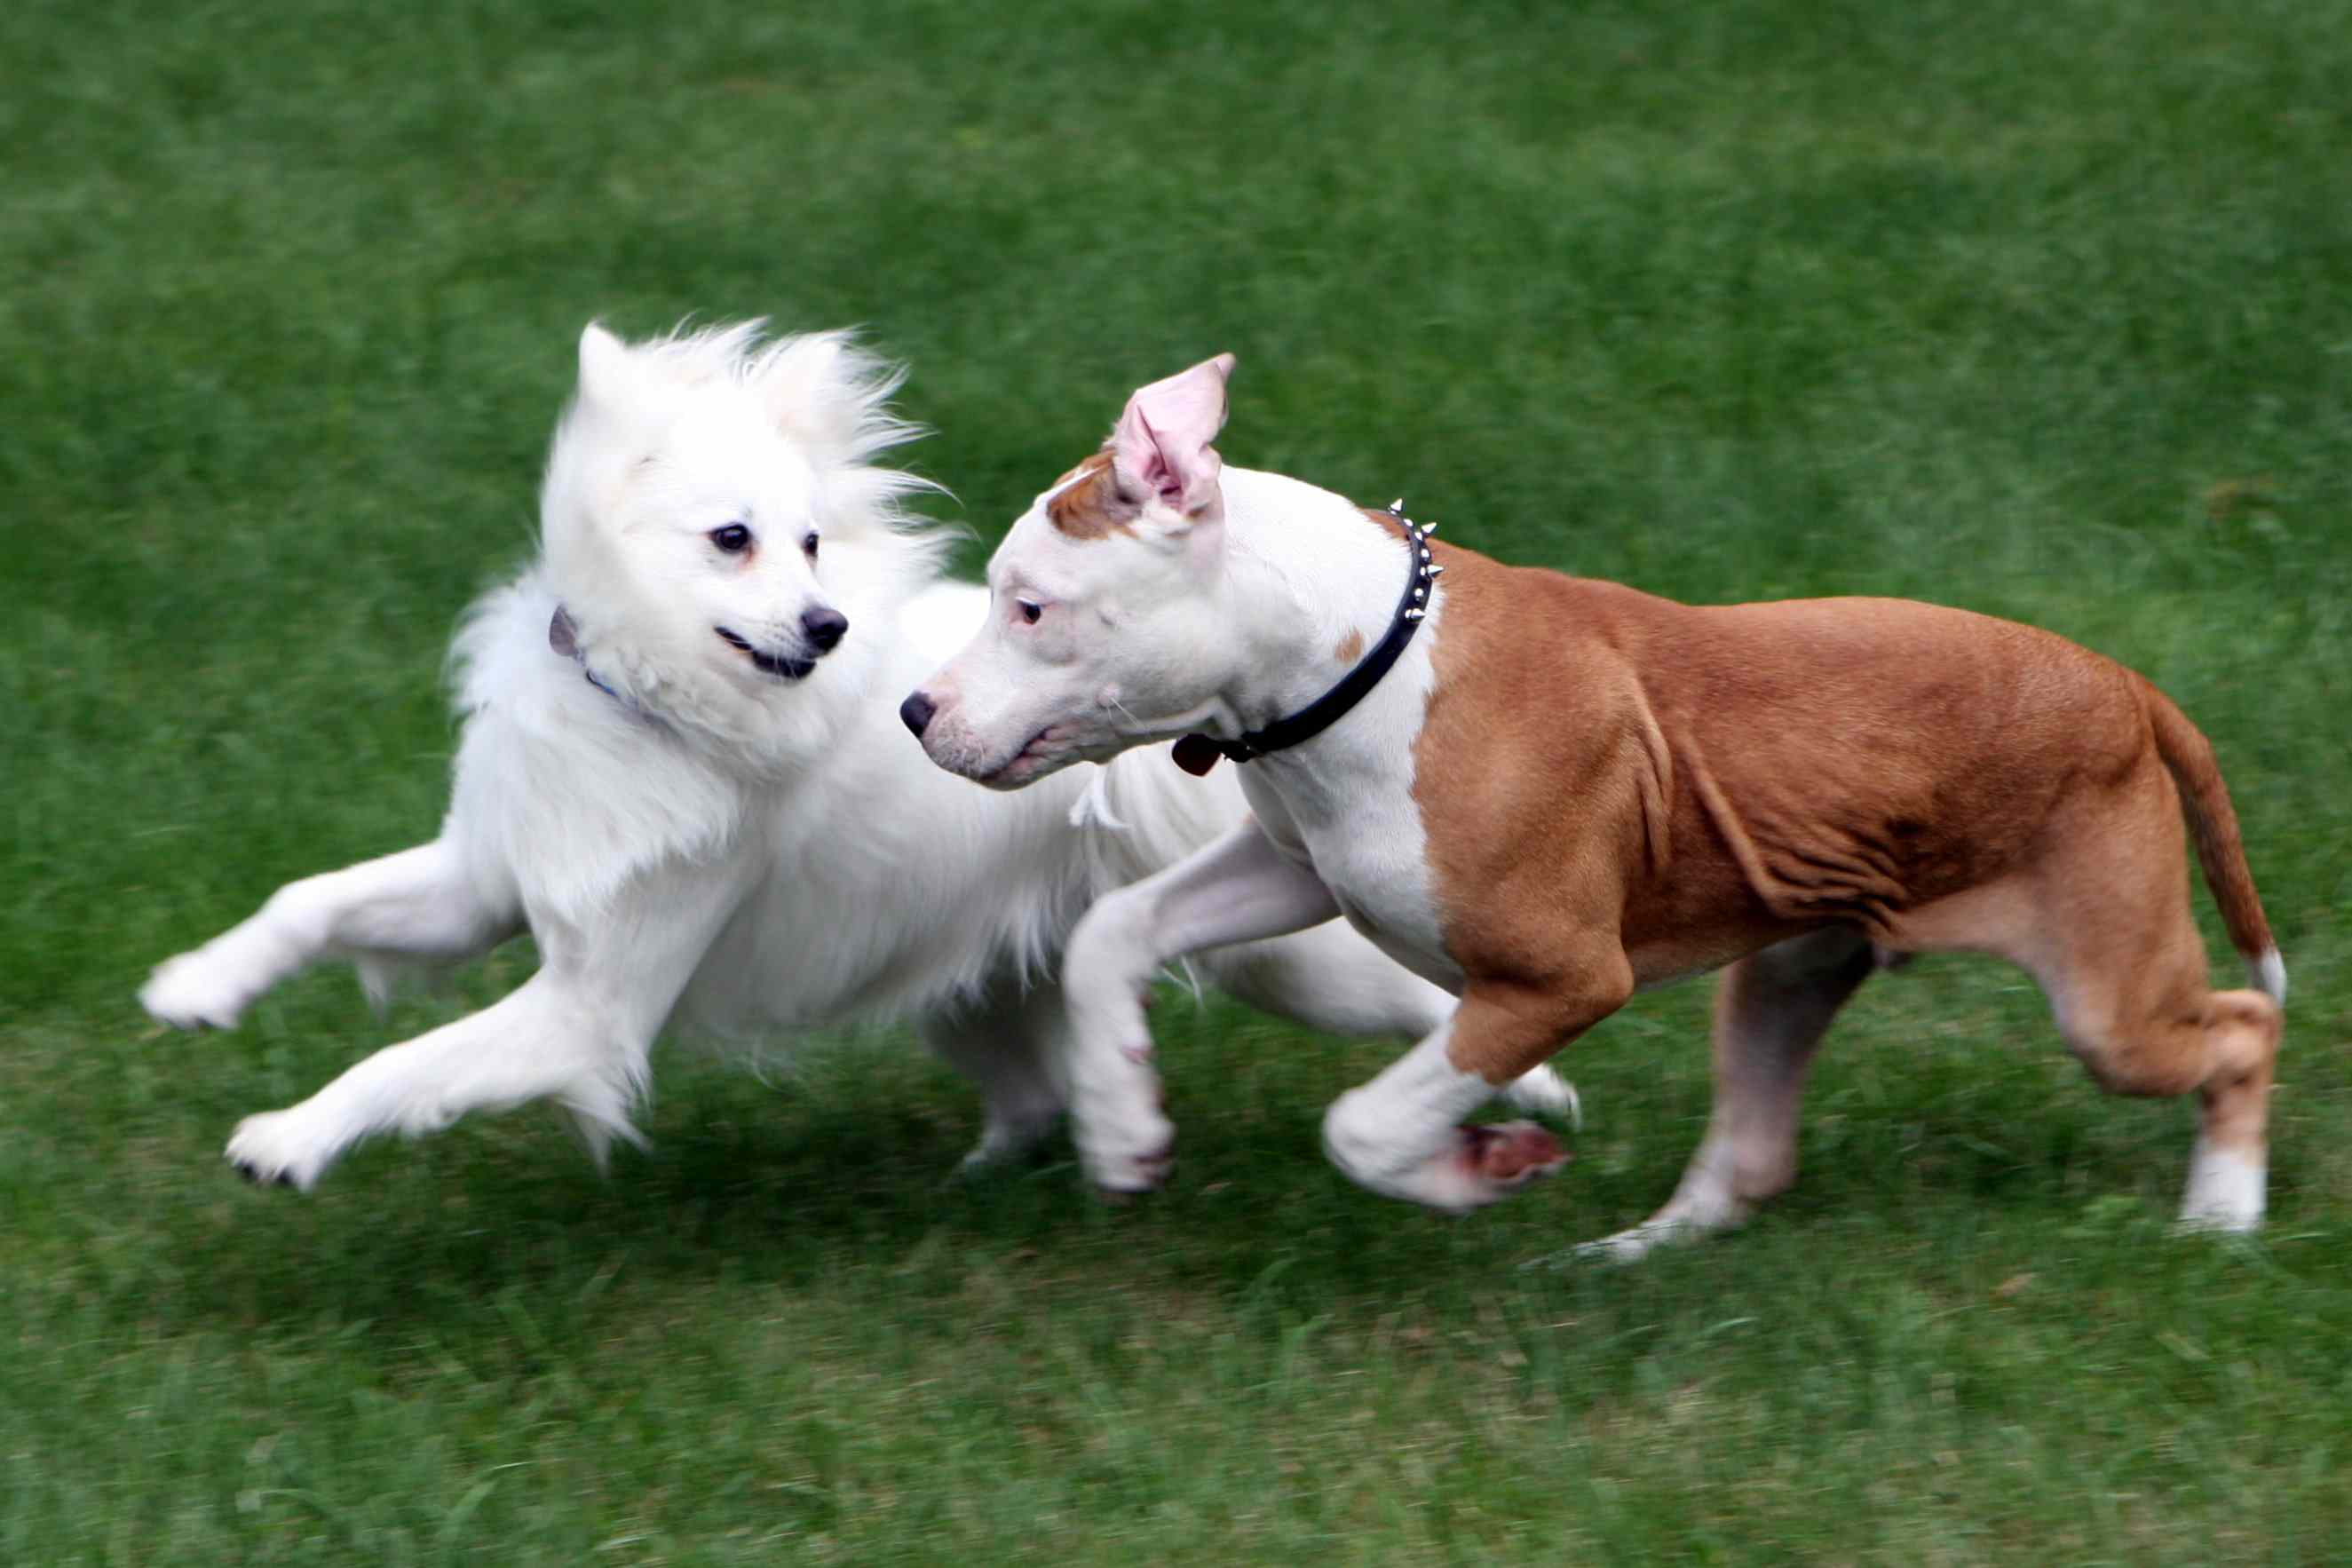 Two dogs An American Eskimo breed and Bull Terrier puppy playing in the grass